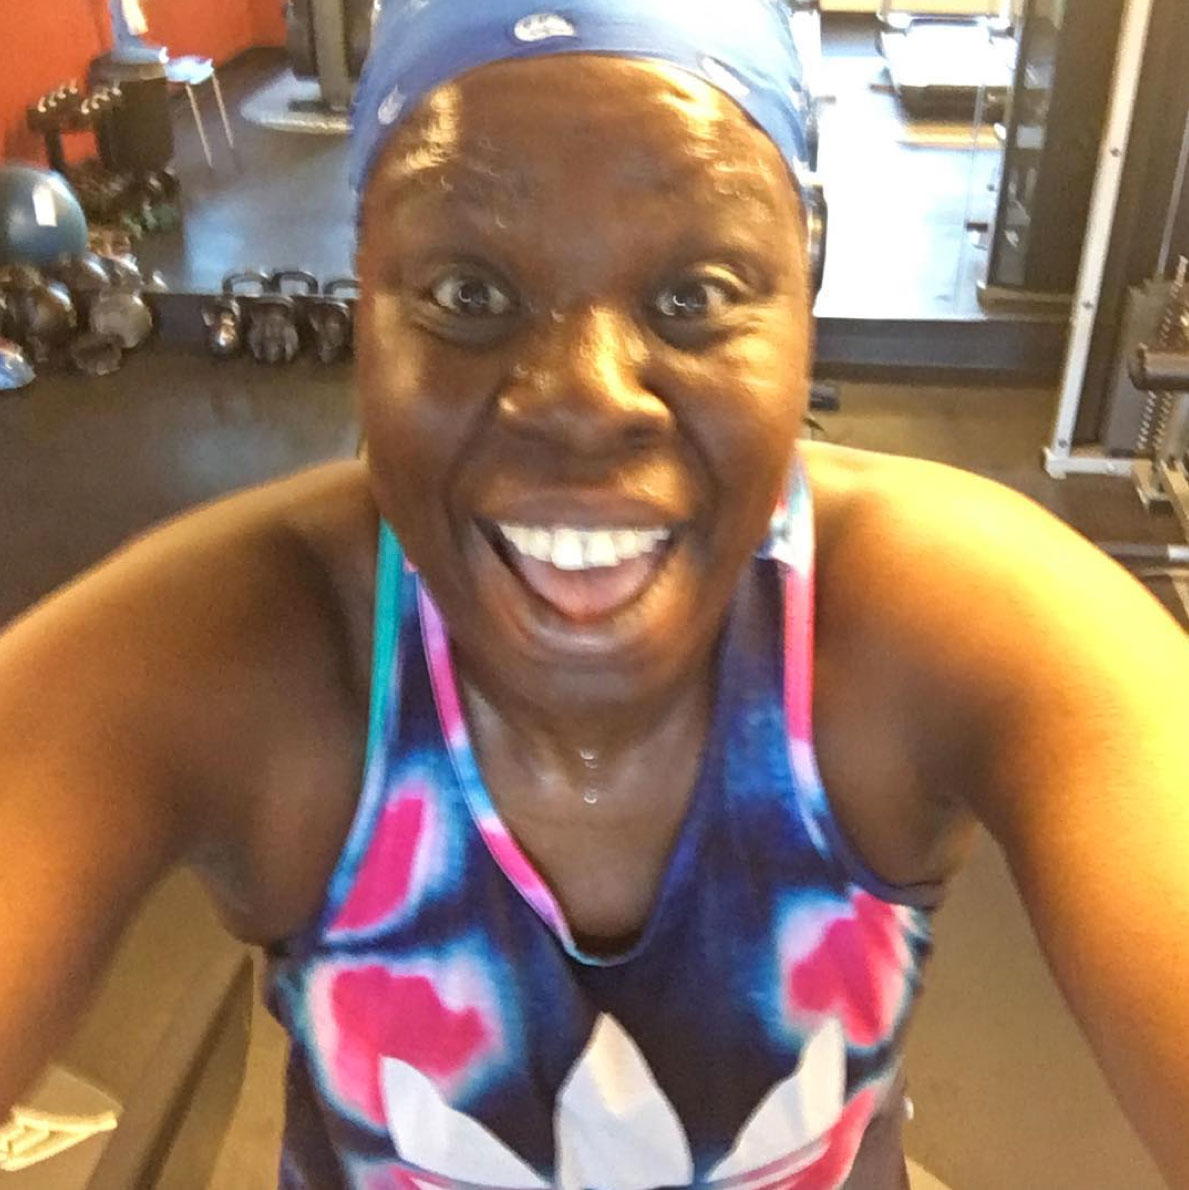 Leslie Jones Gets Sweaty in the Gym as She Keeps Up Her 40-Lb. Weight Loss: 'Arms Arms Arms!'